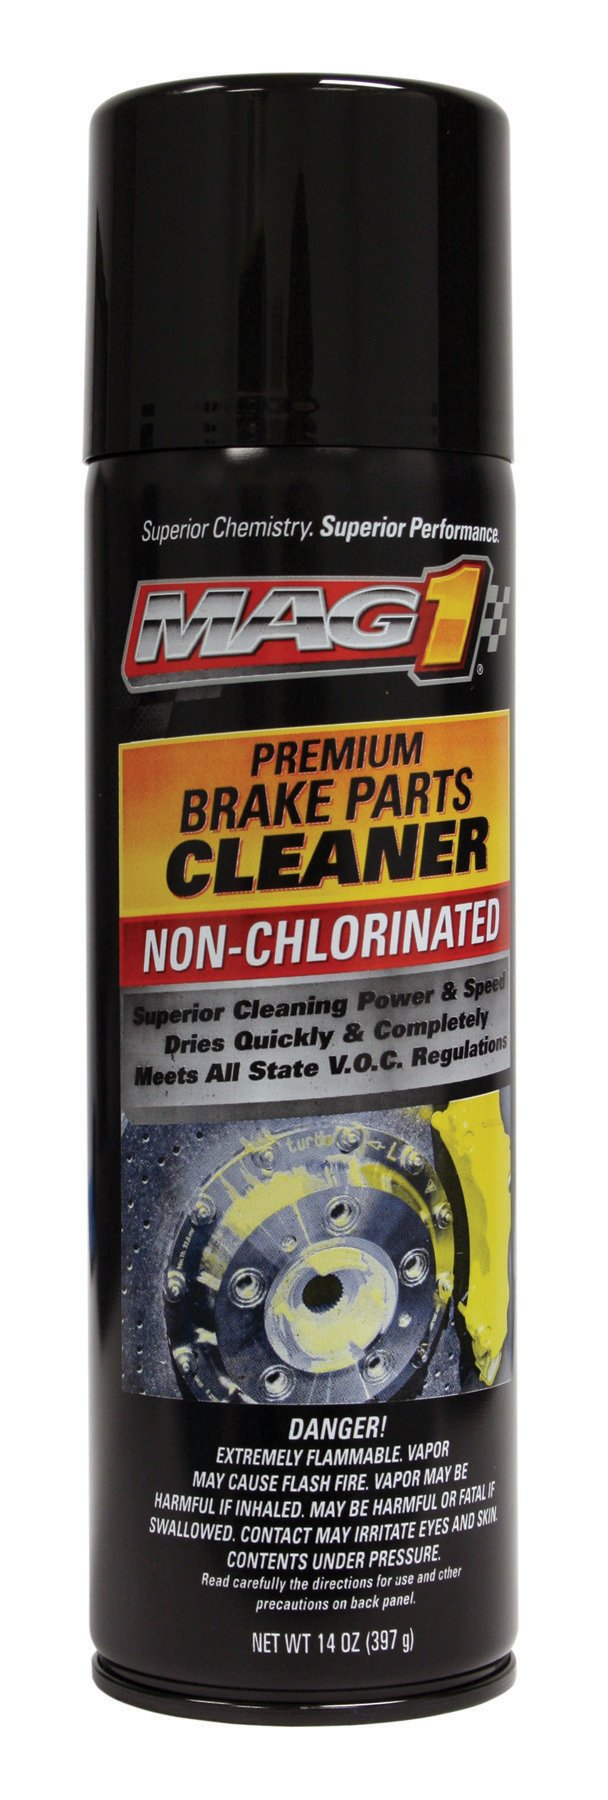 MAG1 579-pk12 Non-Chlorinated Brake Parts Cleaner - 14 oz., (Pack of 12)